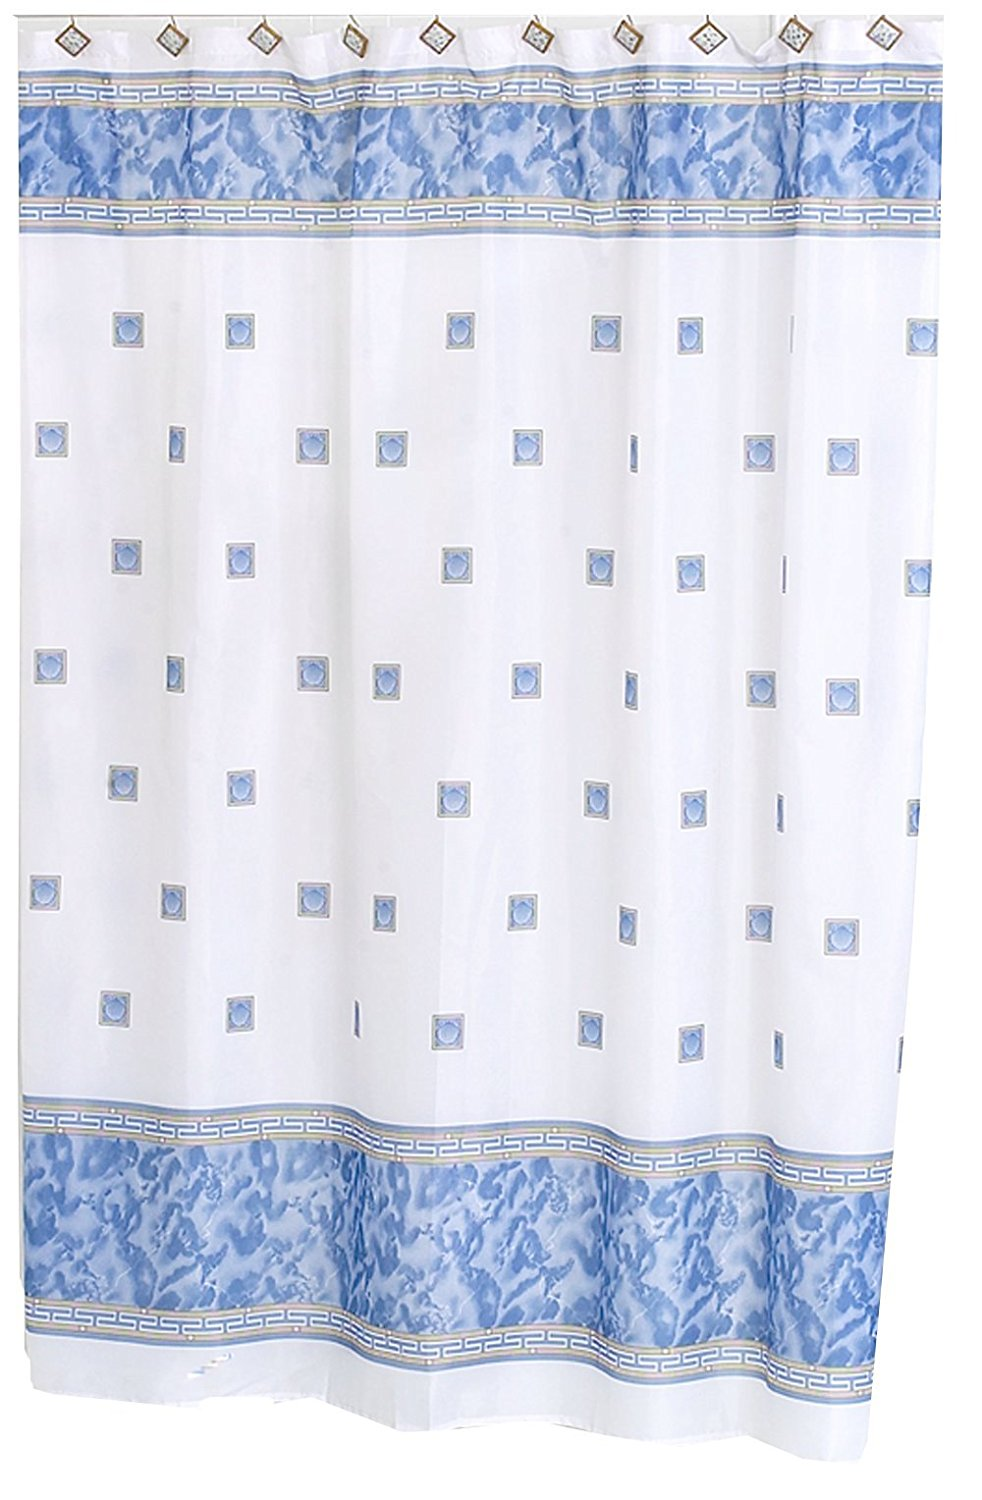 windsor 5 feet 8 inches by 6 feet fabric shower curtain slate blue 100 polyester by carnation home fashions from usa walmart com